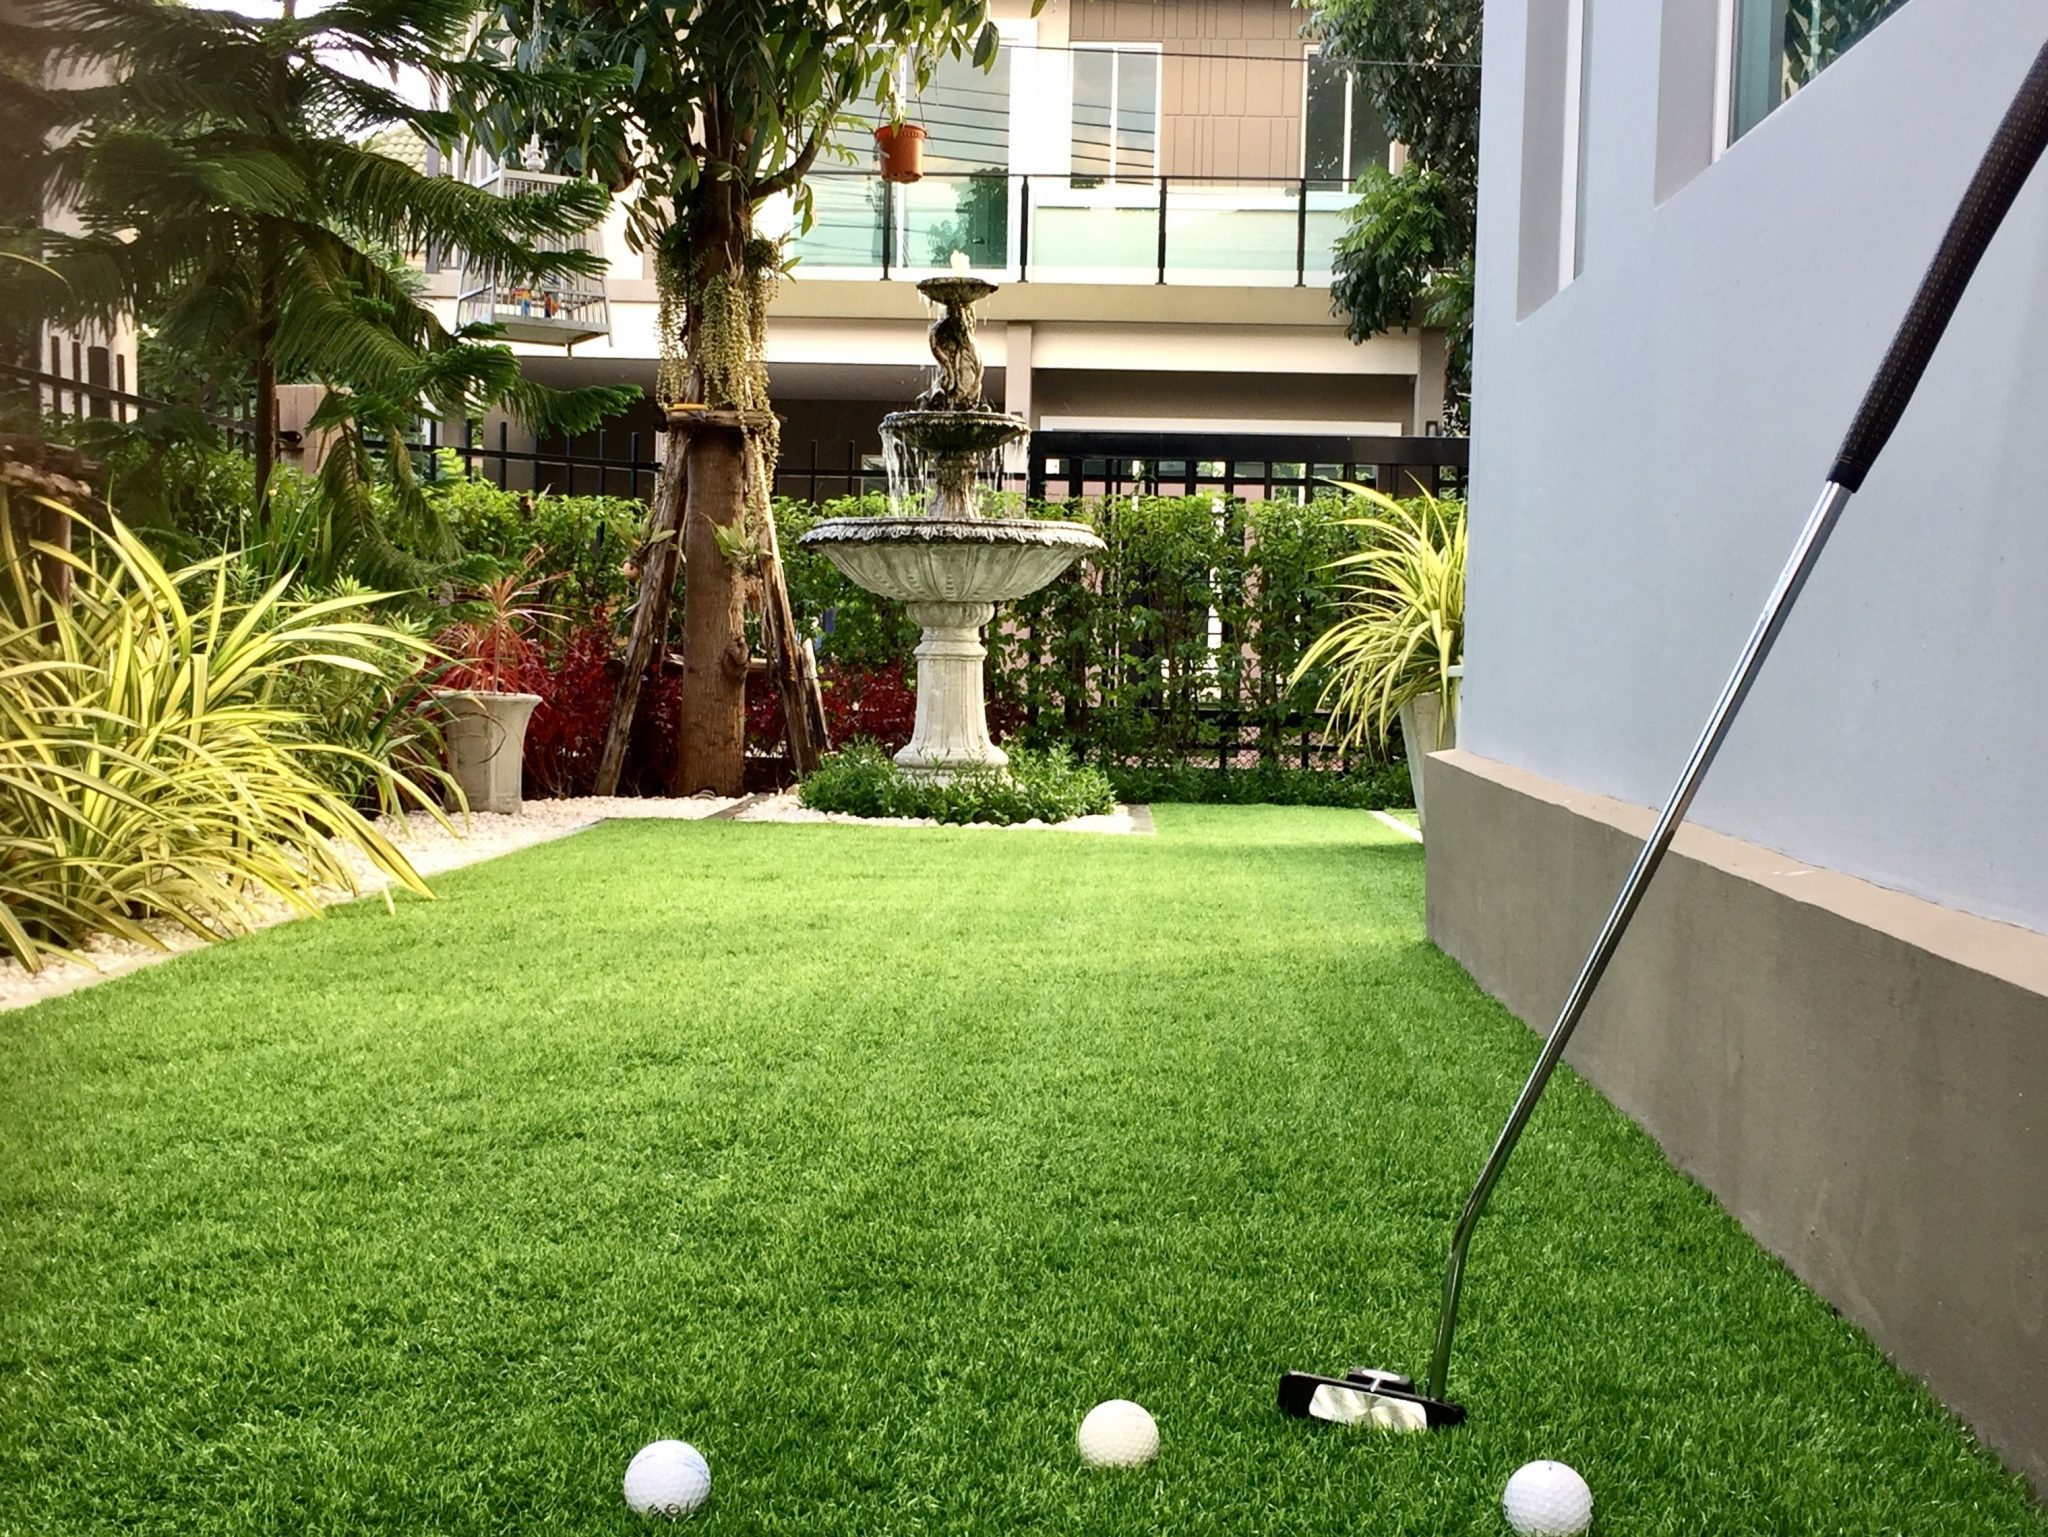 Can I Install Artificial Turf on Top of Real Grass